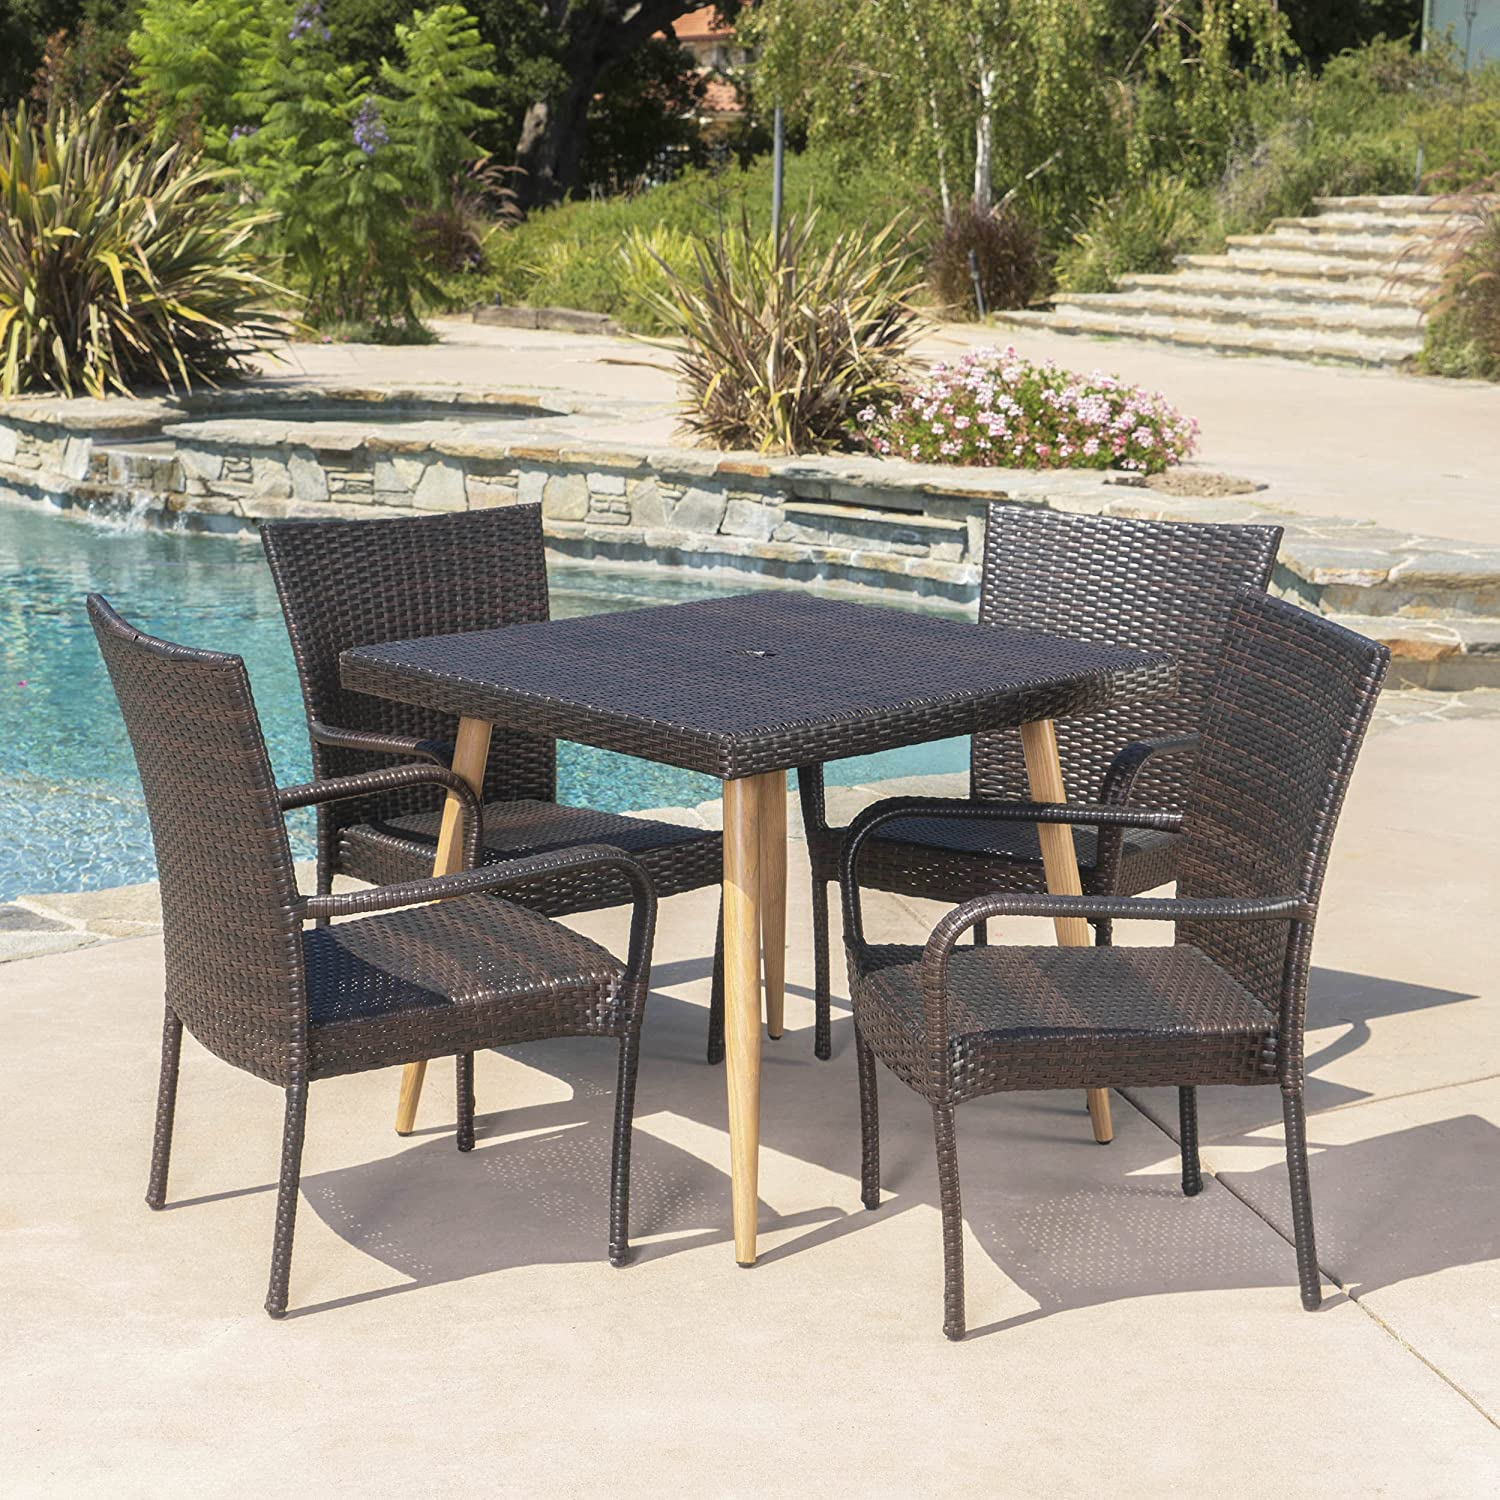 Christopher Knight Home Cabrillo Outdoor Wicker Dining Set 5 Pcs Set Multibrown Garden Outdoor Amazon Com